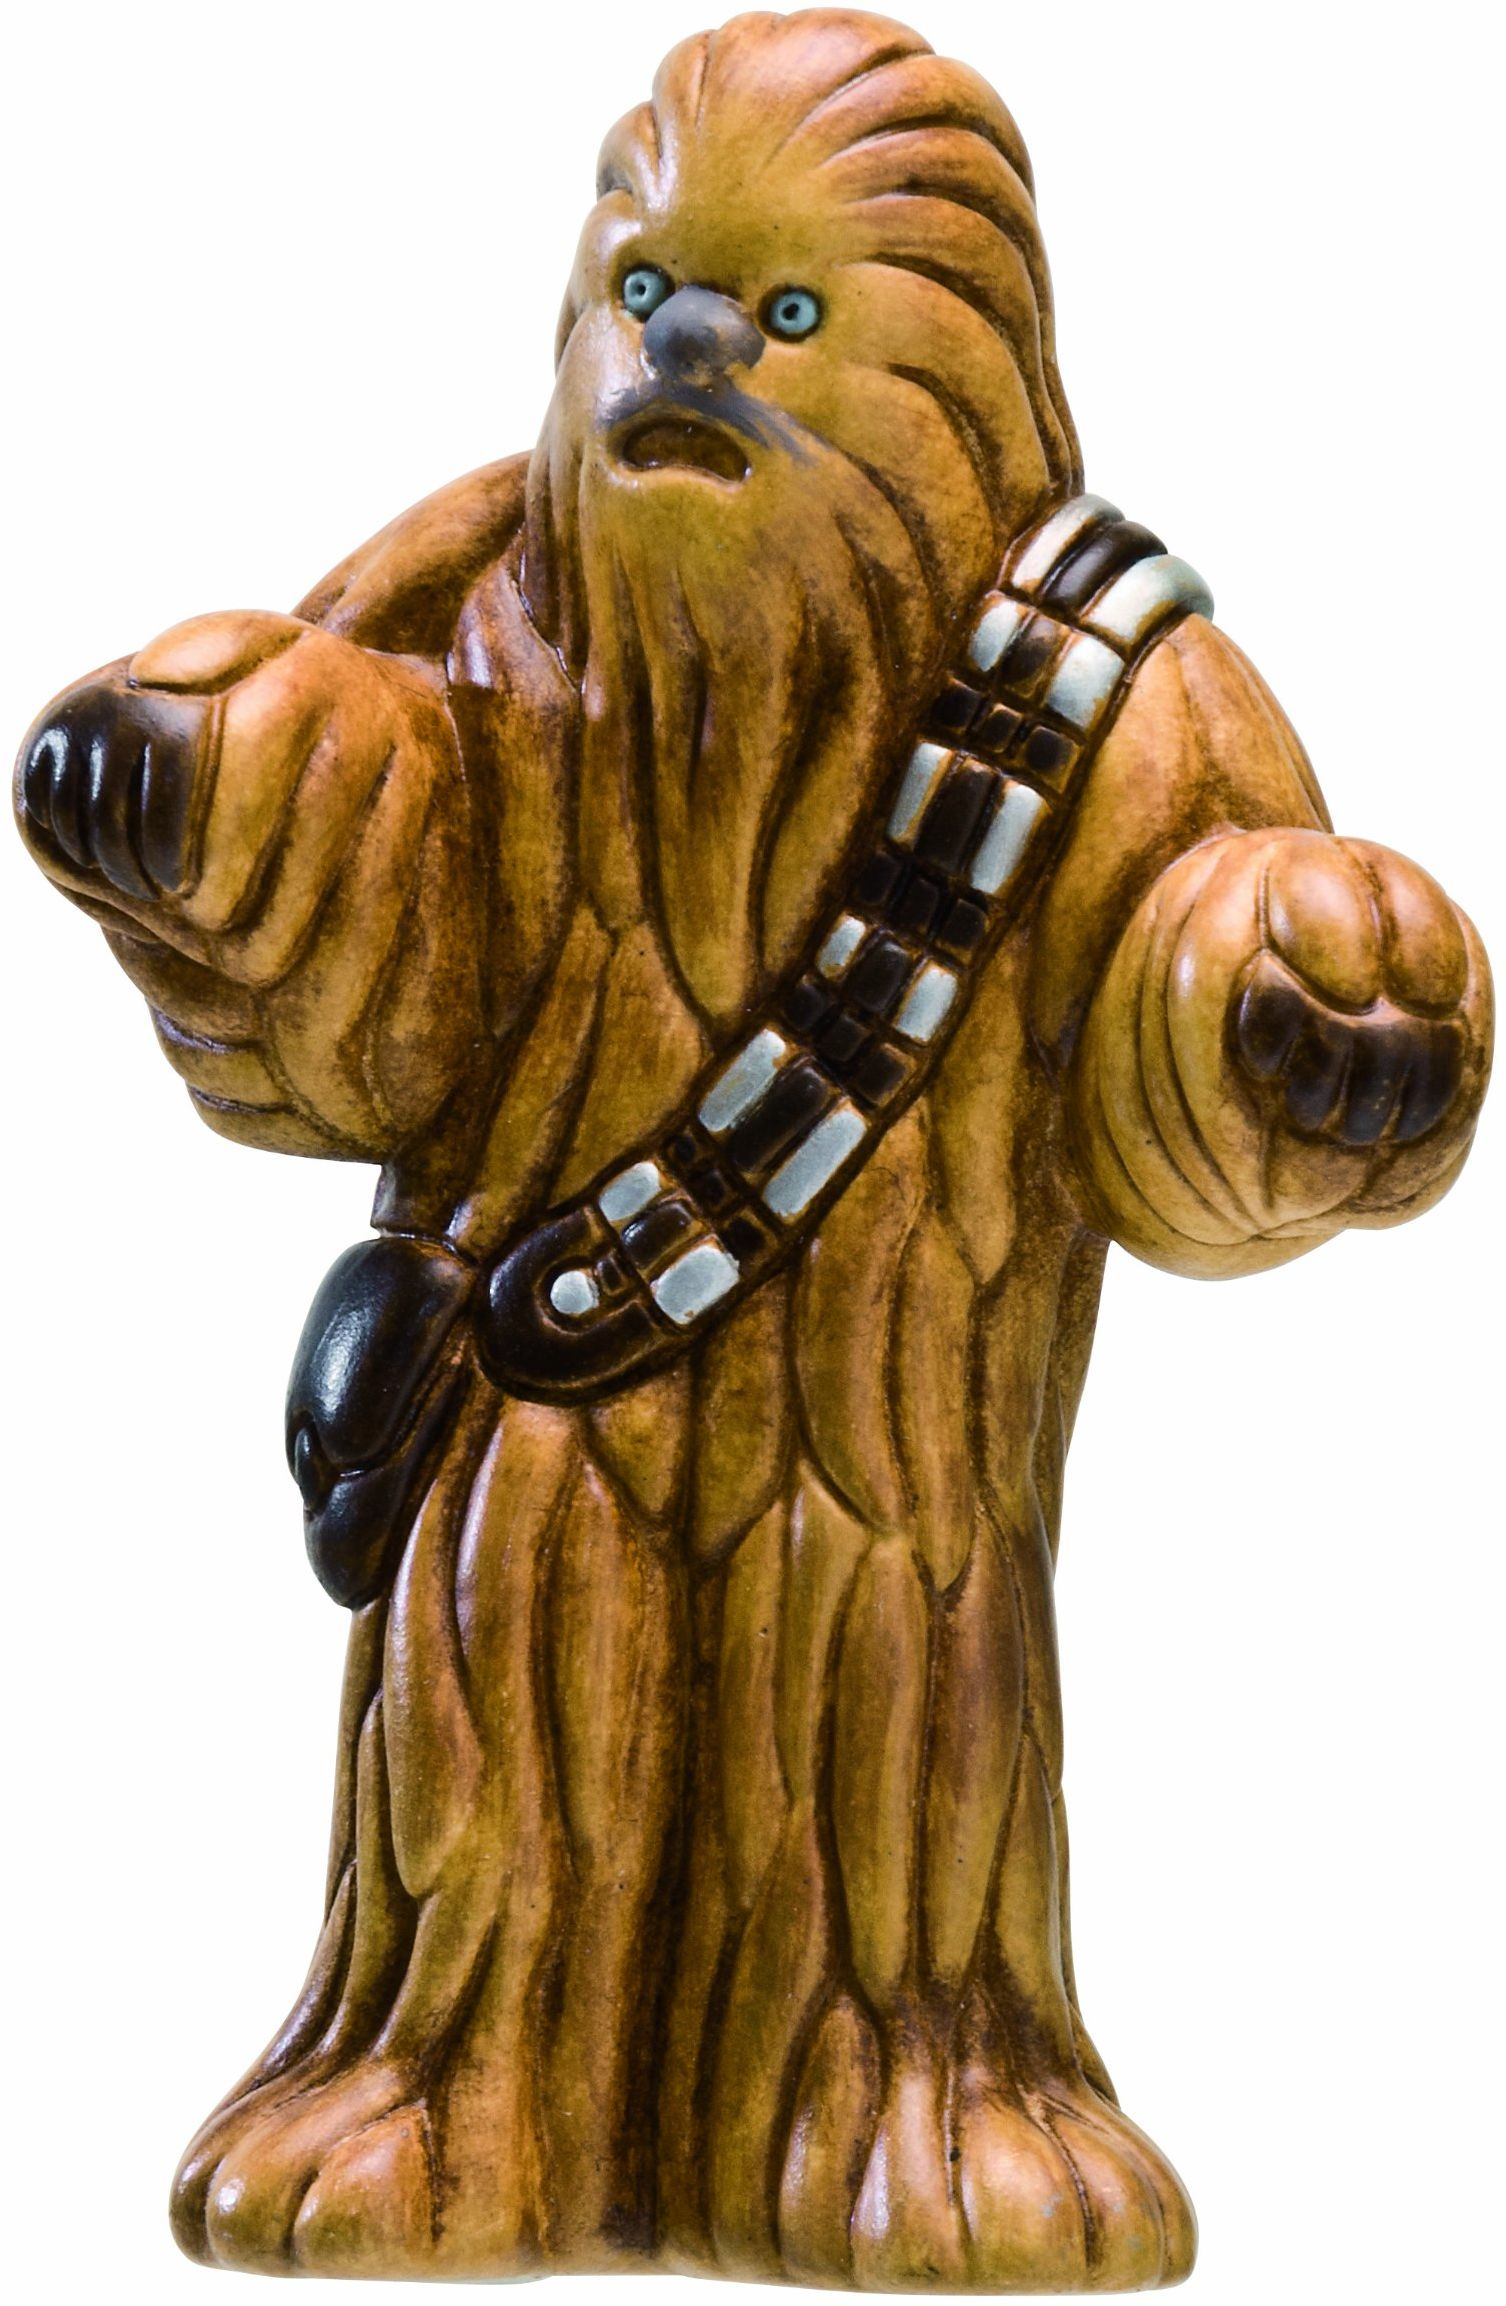 Joy Toy 651339 - Star Wars figurki Chewbacca, 13,5 x 13,5 x 9 cm